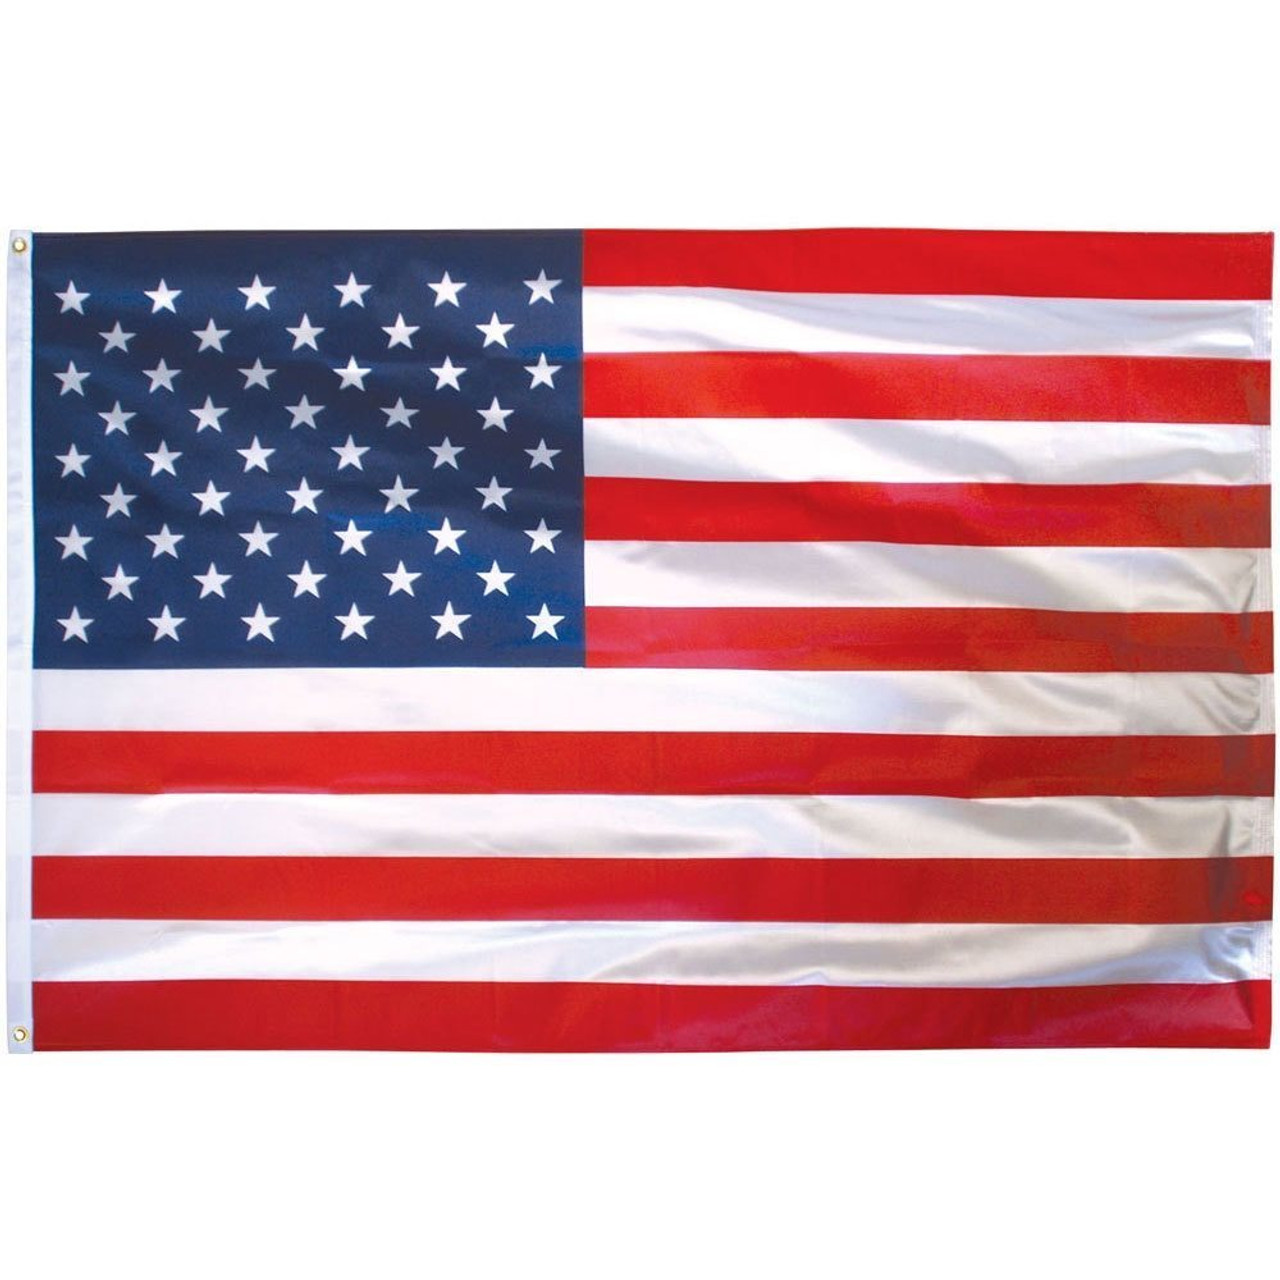 The nautical American flag is essentially the standard American flag, with 50 bright white embroidered stars on a blue background, and thirteen red-and-white lock-stitched sewn stripes. The flag is reinforced with lock-stitching and a white canvas header.